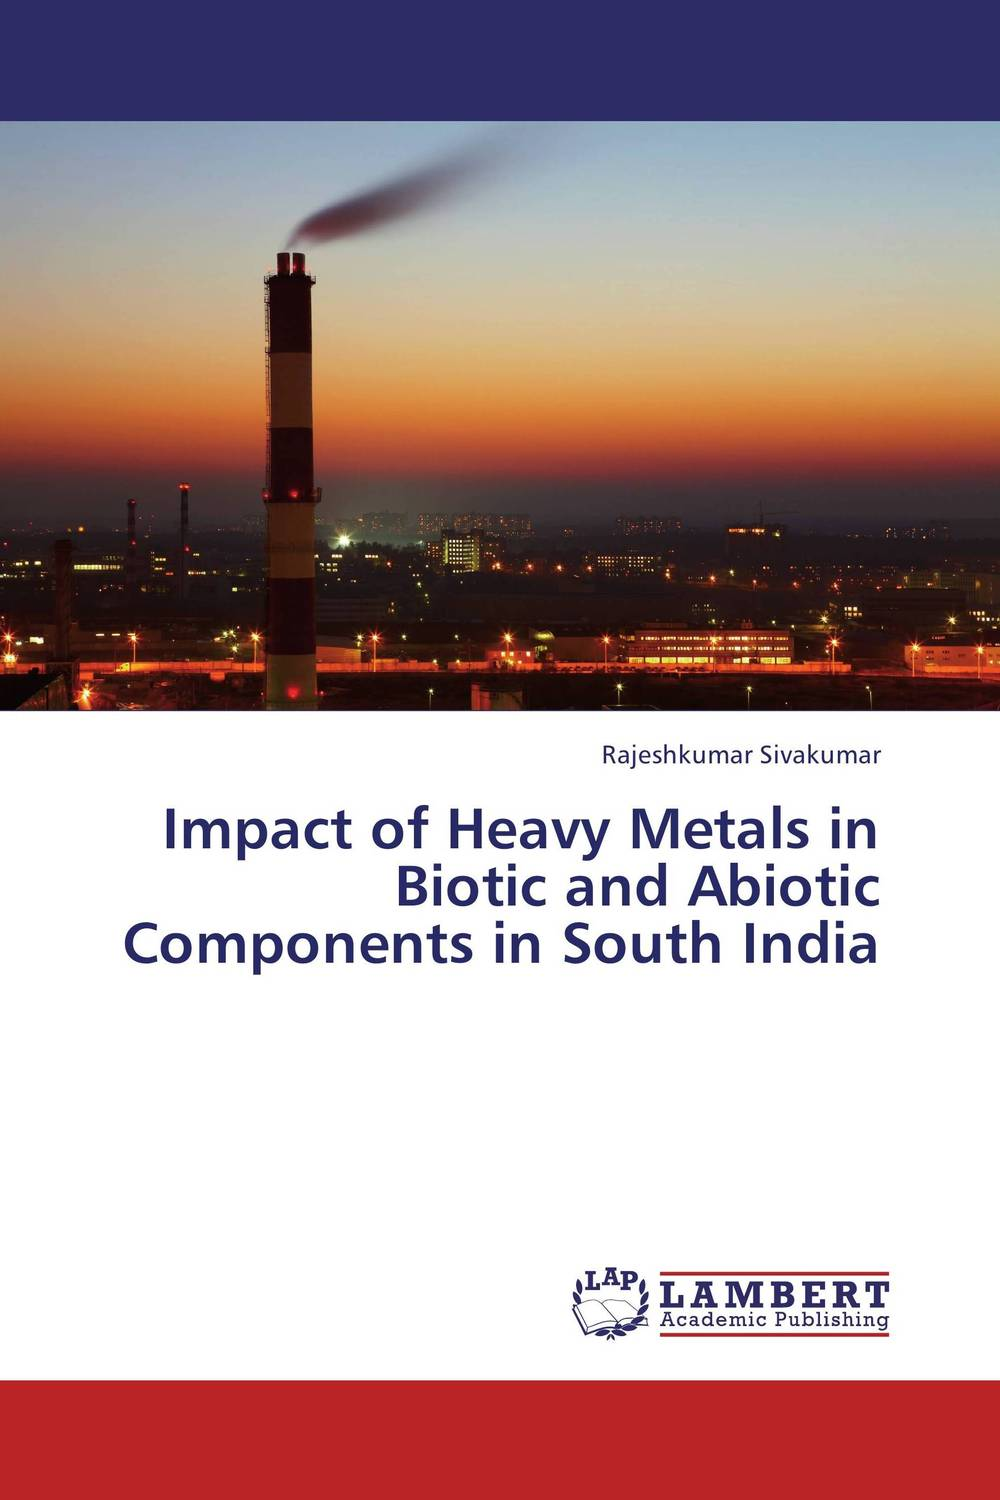 Impact of Heavy Metals in Biotic and Abiotic Components in South India marwan a ibrahim effect of heavy metals on haematological and testicular functions